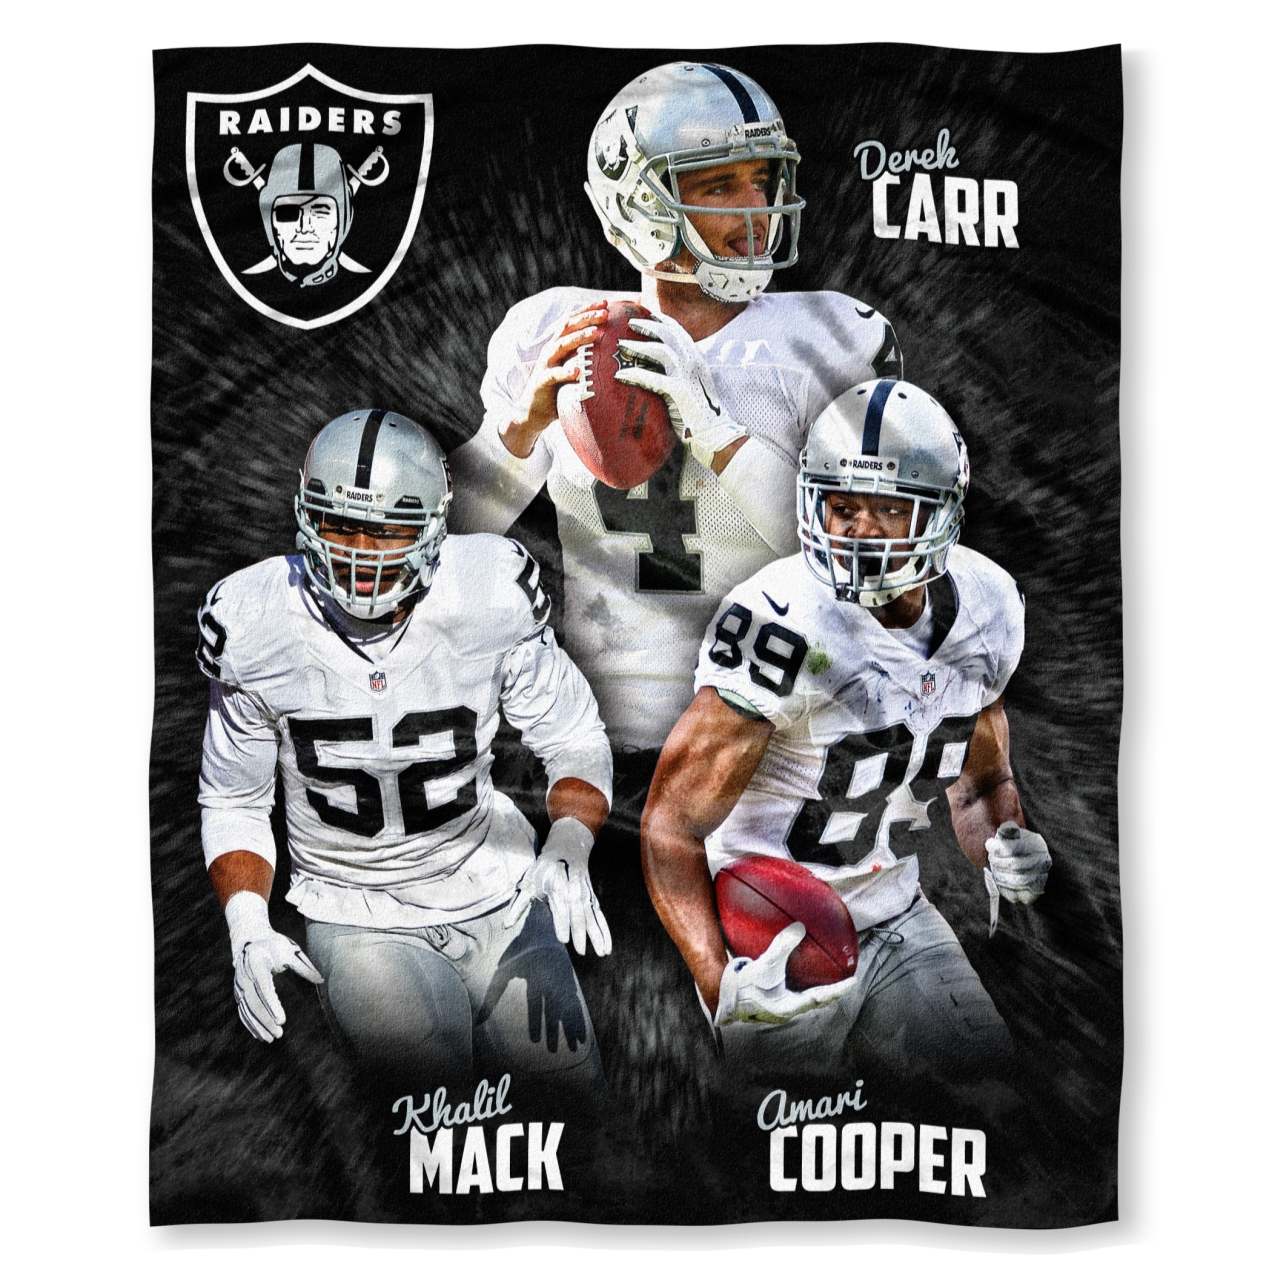 im_575_nflpa_raiders